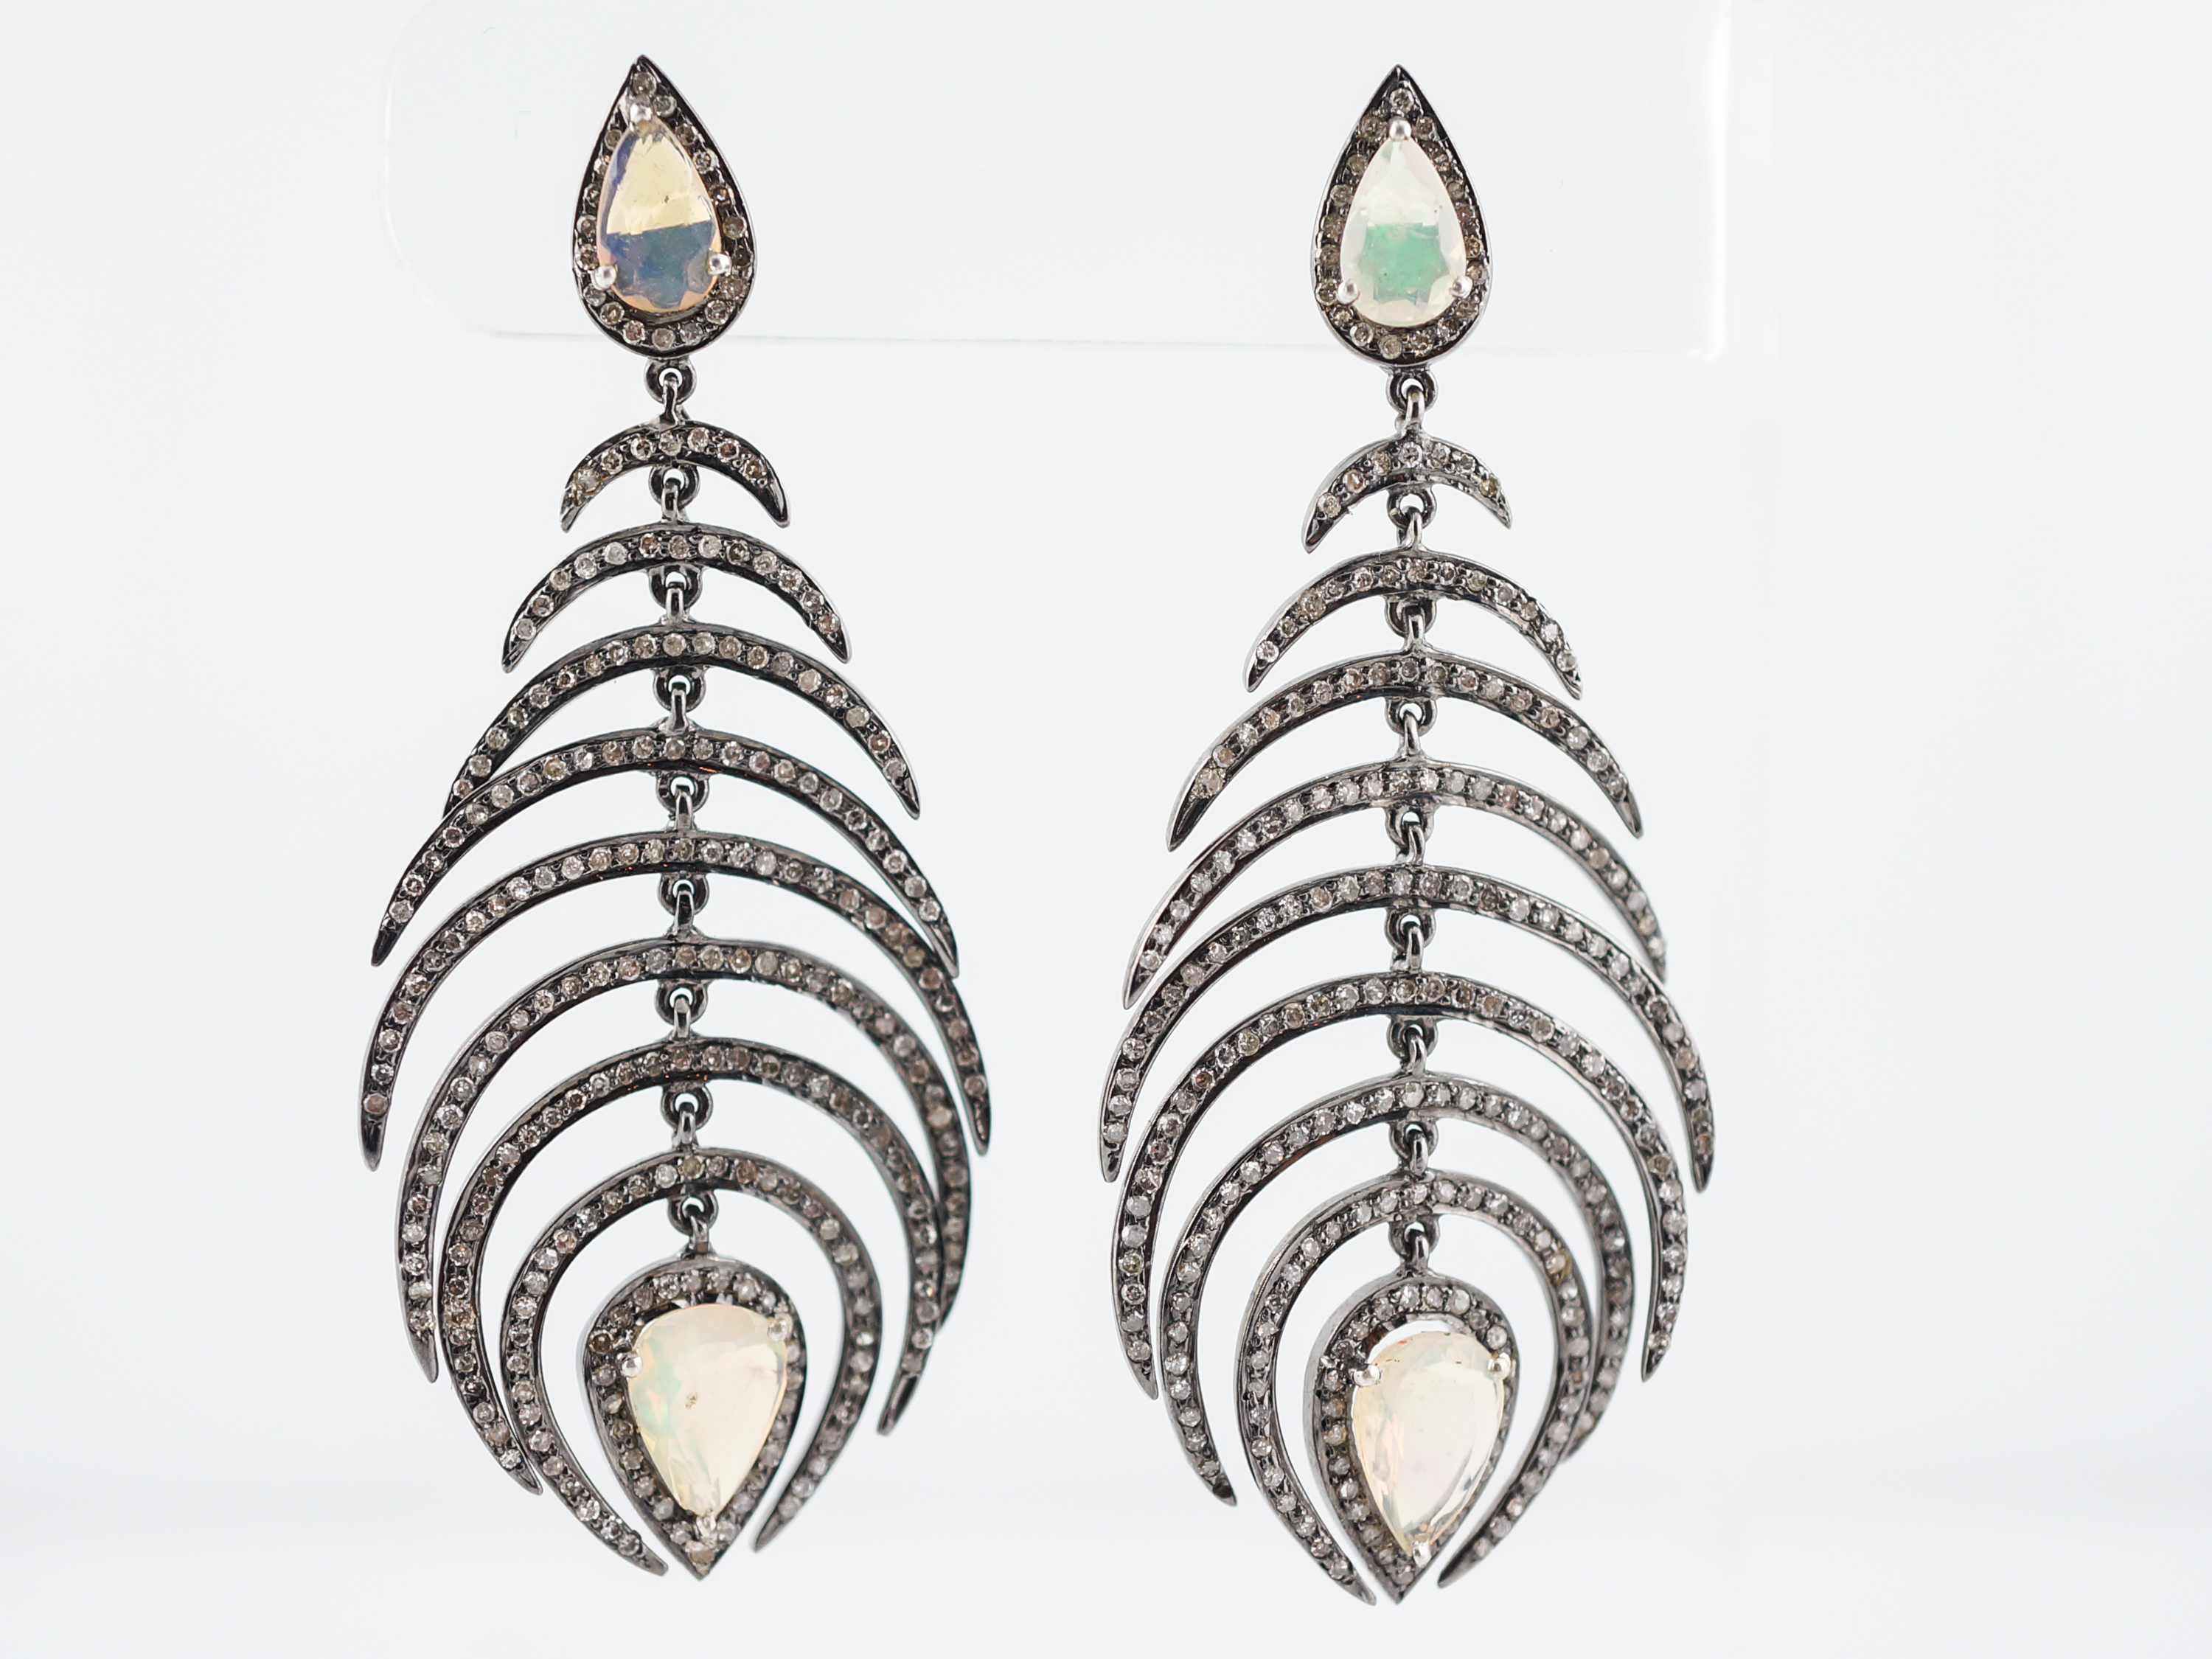 gallery aurelie lyst jewelry single gold drop metallic bidermann floral earrings athina in earring